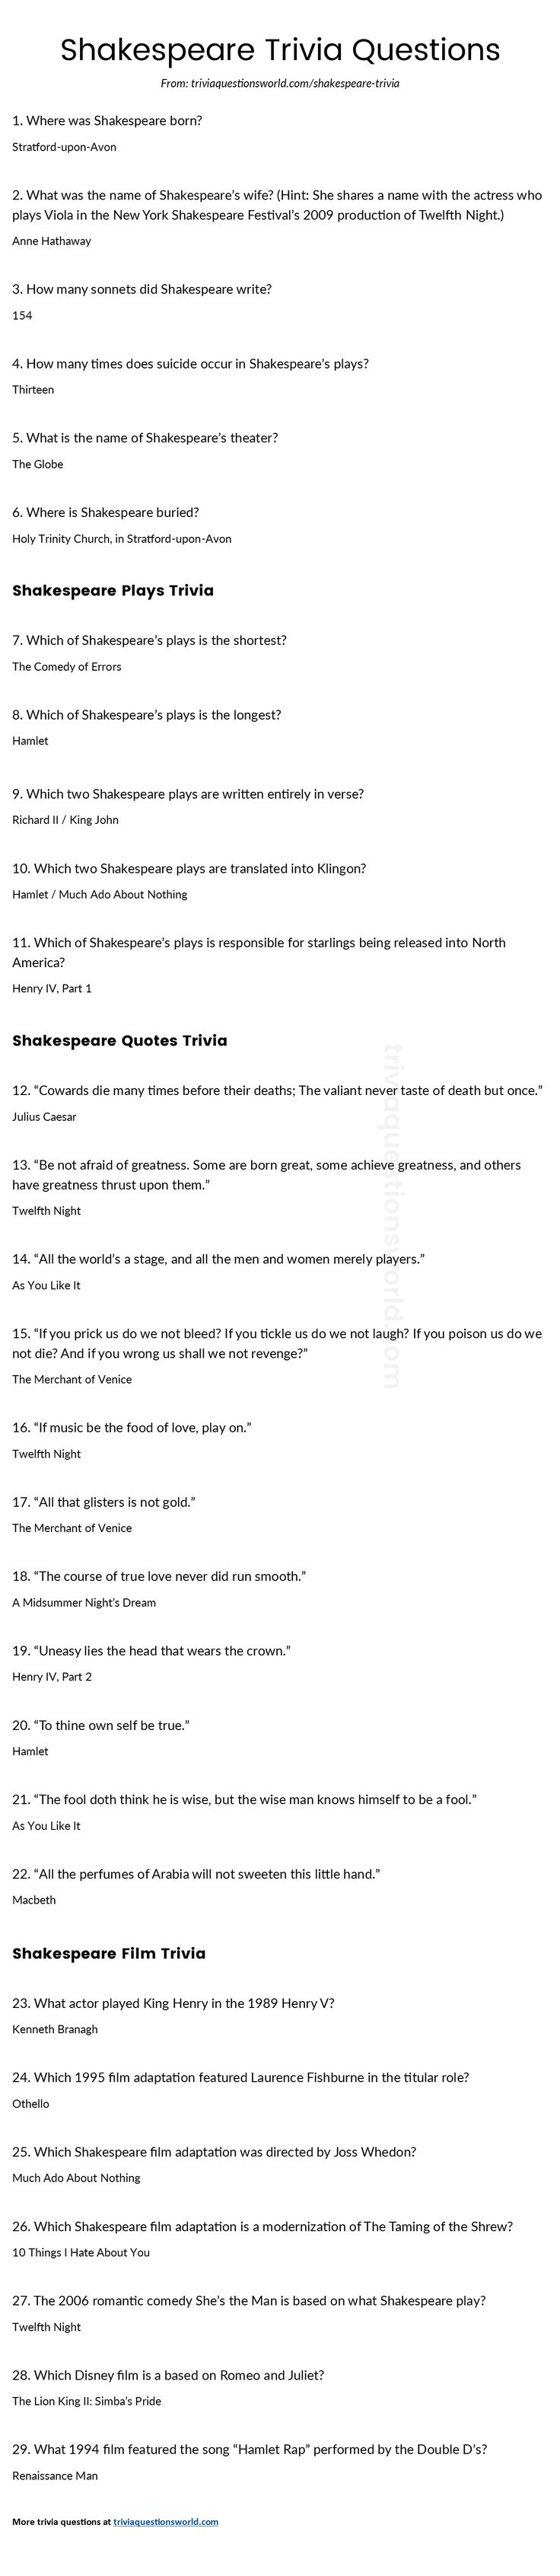 Lots of great Shakespeare trivia questions and answers!